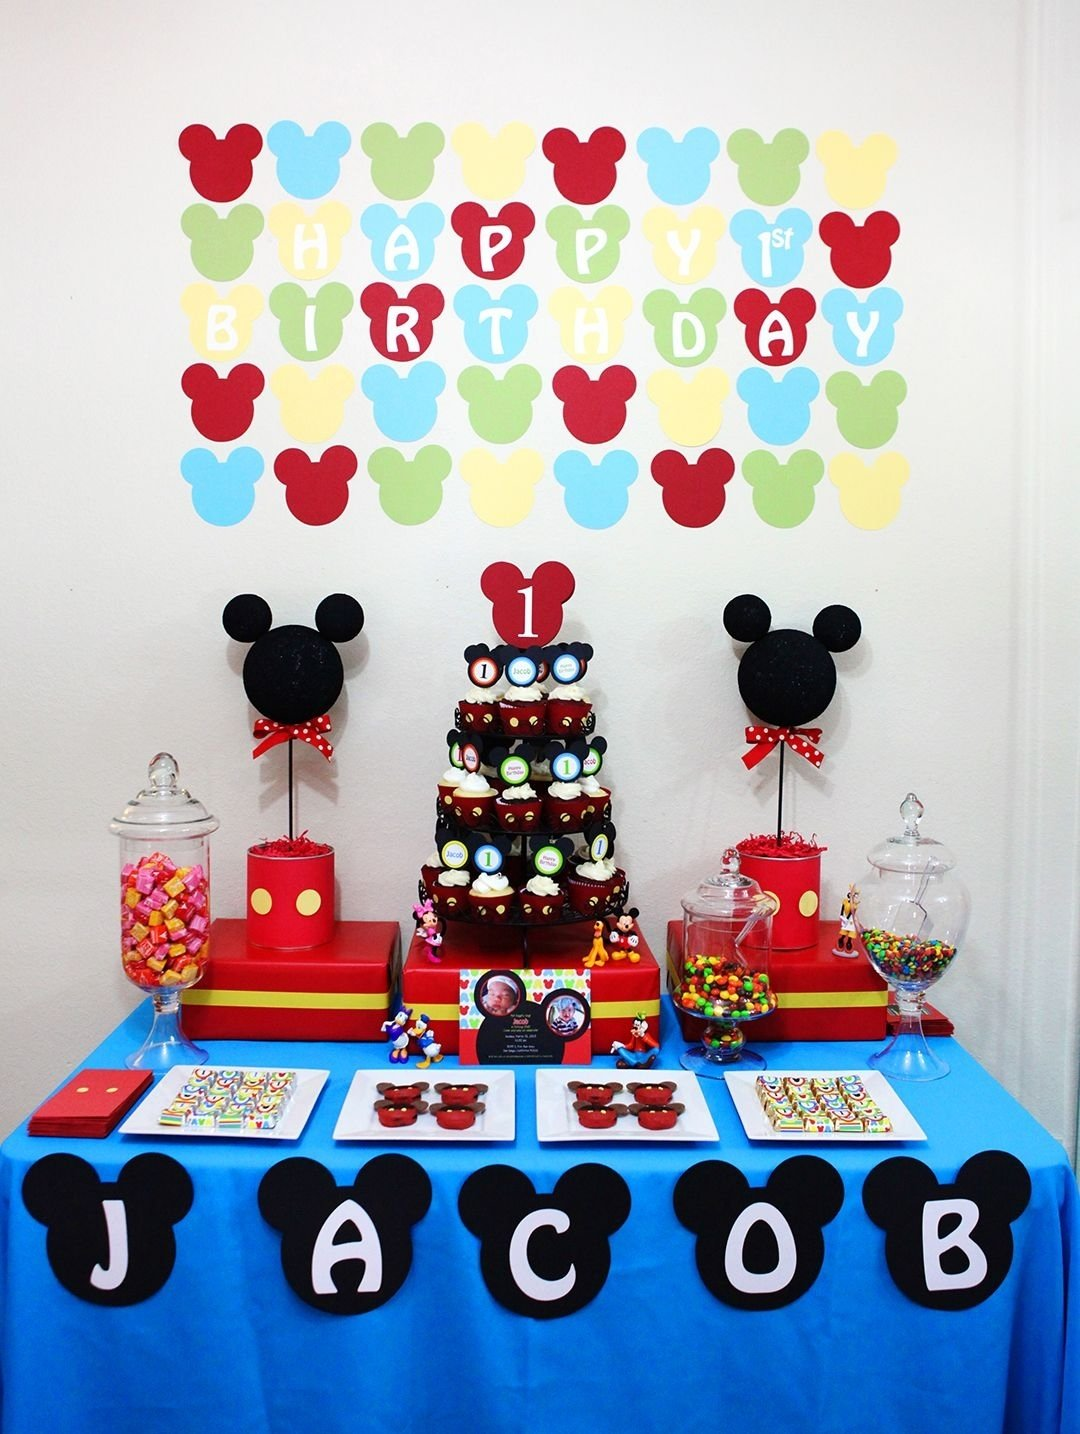 10 Lovely Mickey Mouse Bday Party Ideas mickey mouse party ideas mickey mouse party ideas pinterest 1 2020